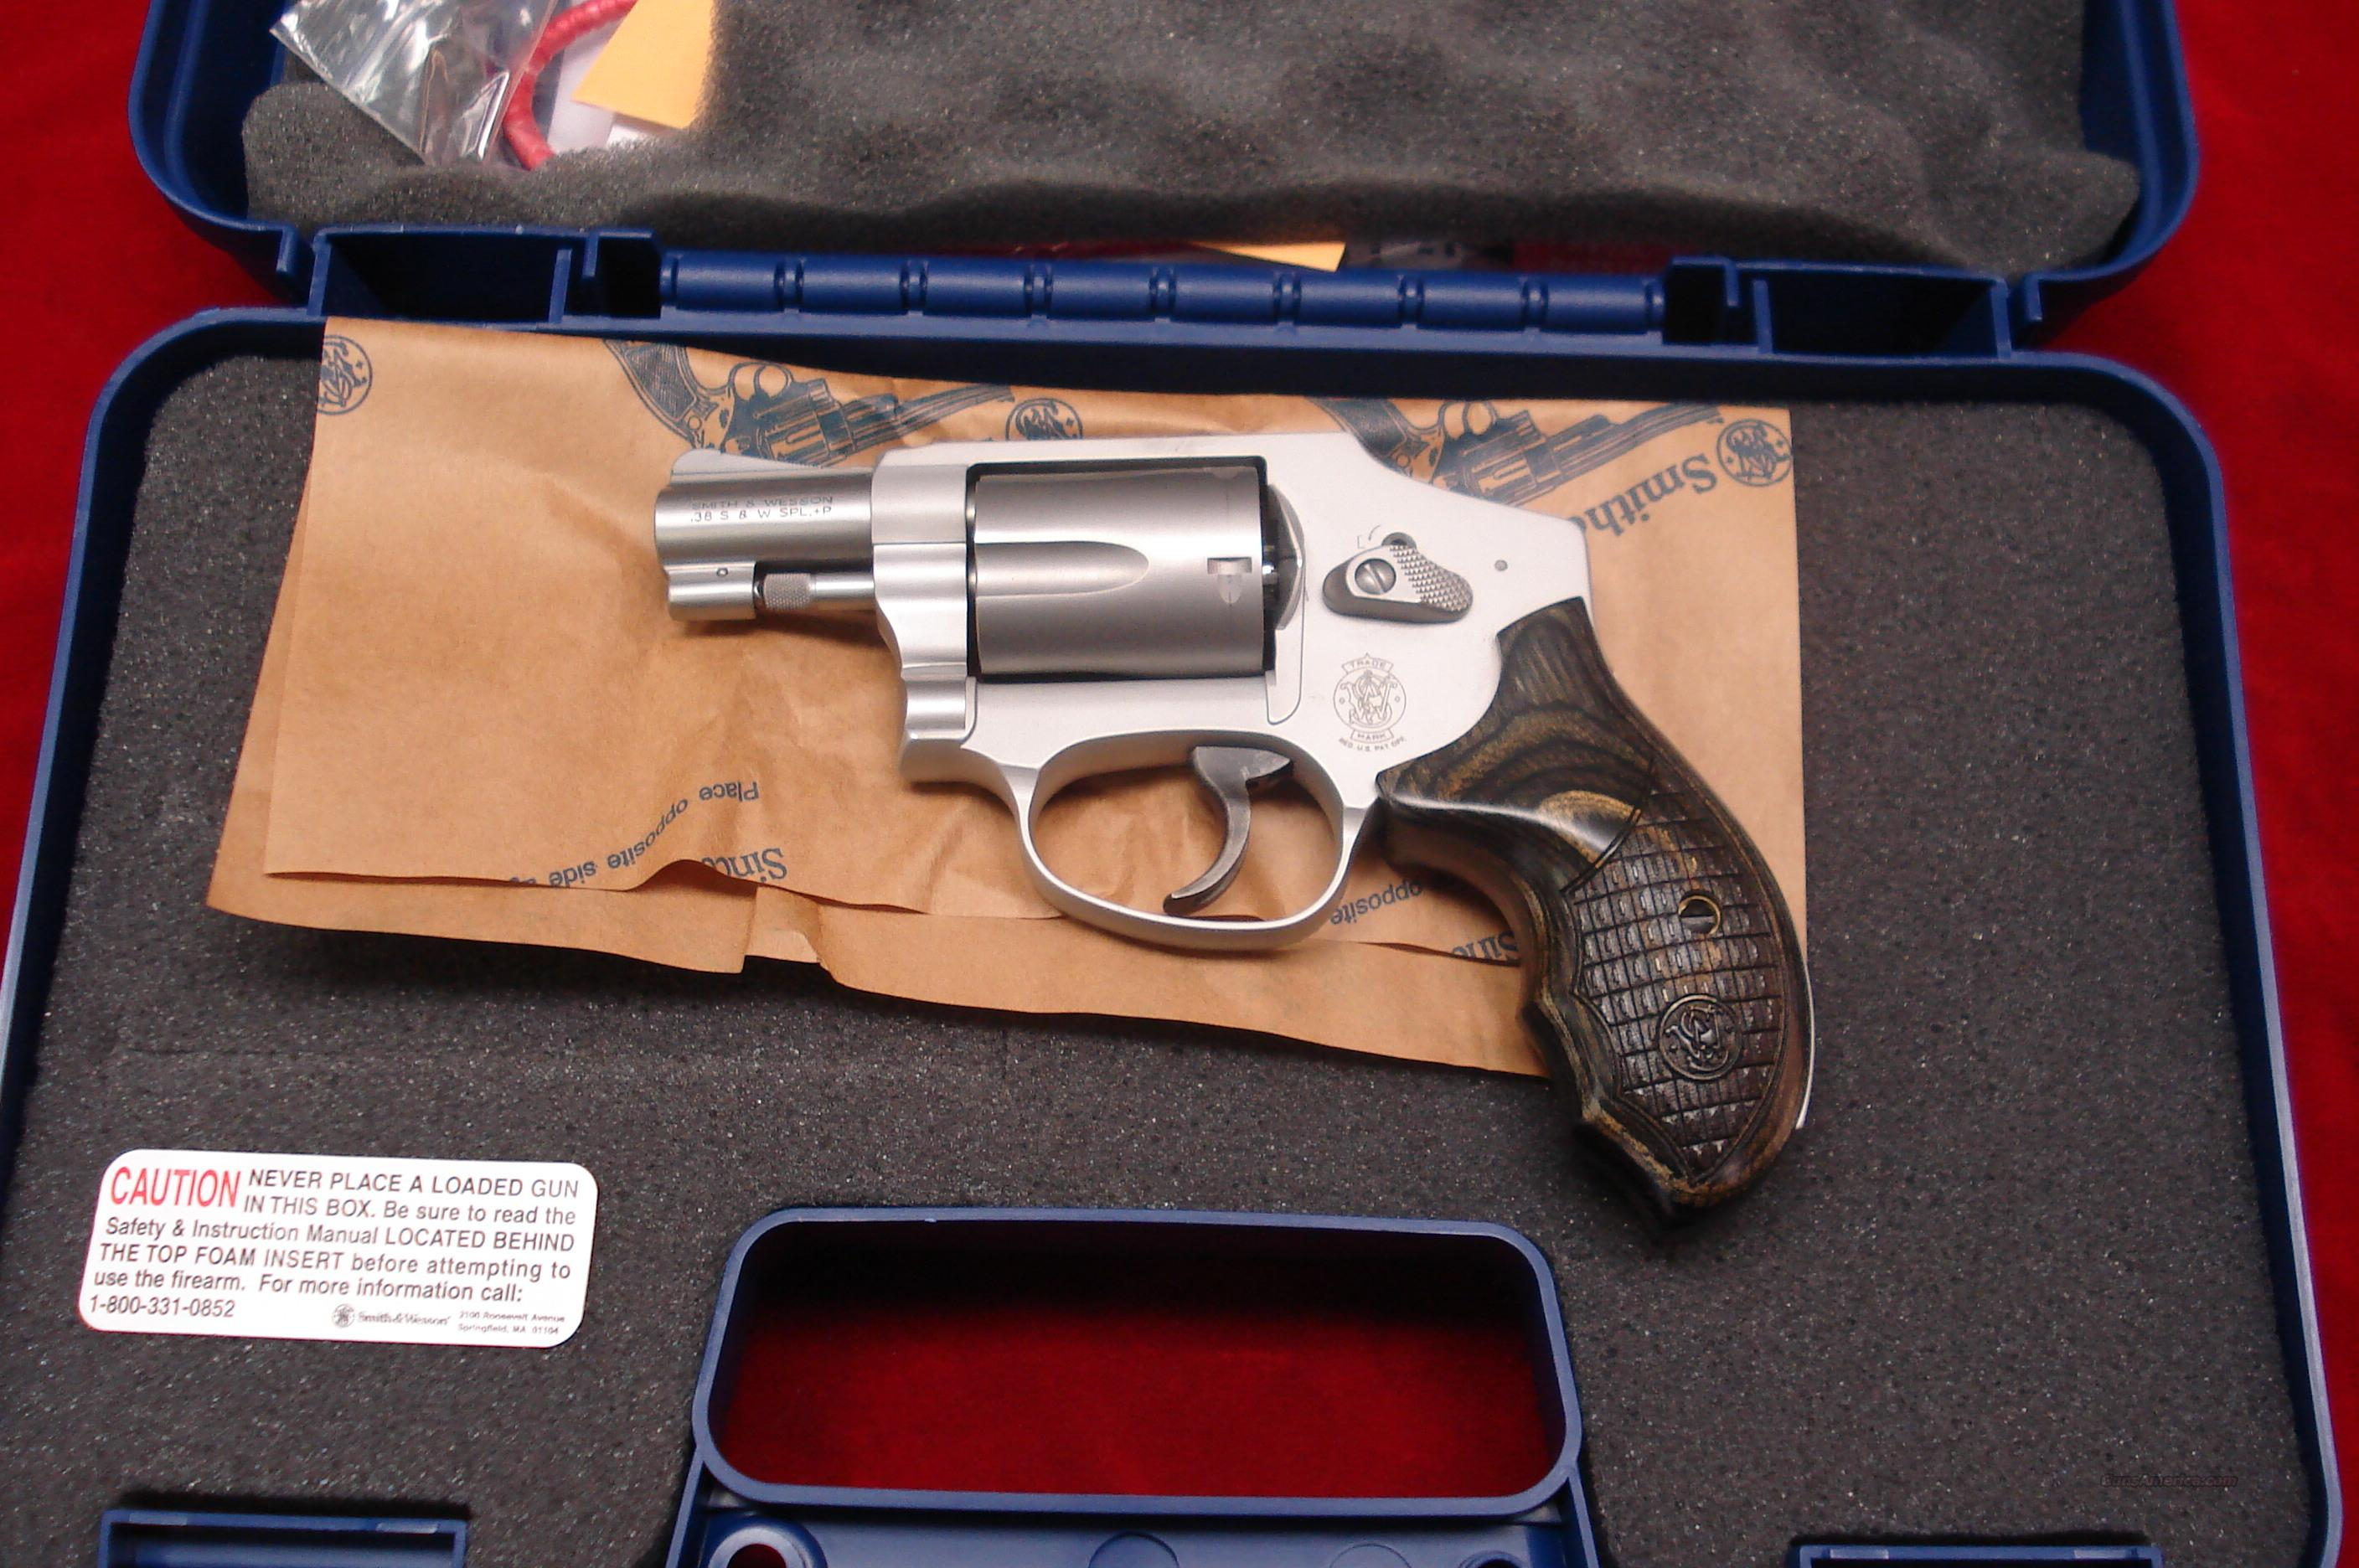 SMITH AND WESSON 642 DELUXE AIRWEIGHT NEW   Guns > Pistols > Smith & Wesson Revolvers > Pocket Pistols